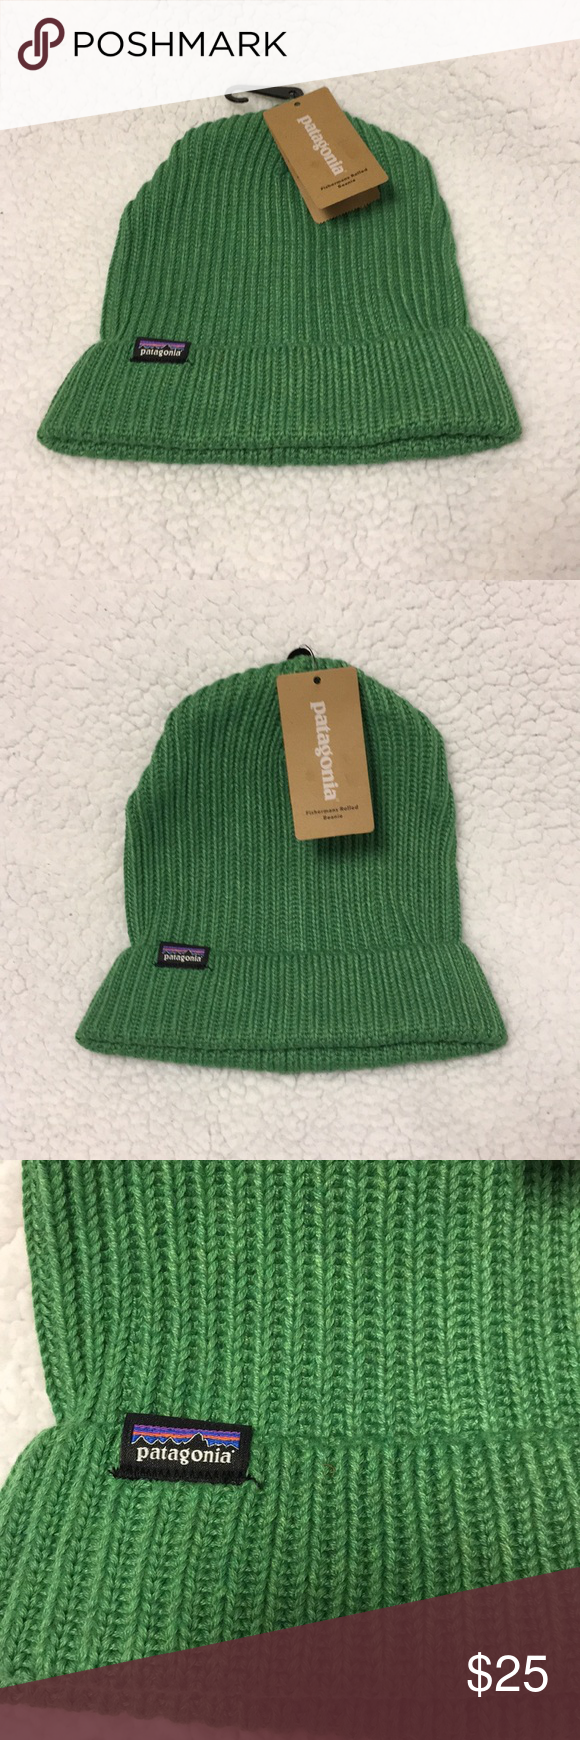 f6ef06cf01ad4 Patagonia Fisherman s Rolled Beanie 🧢🧢🧢 Brand new in the color myrtle  green